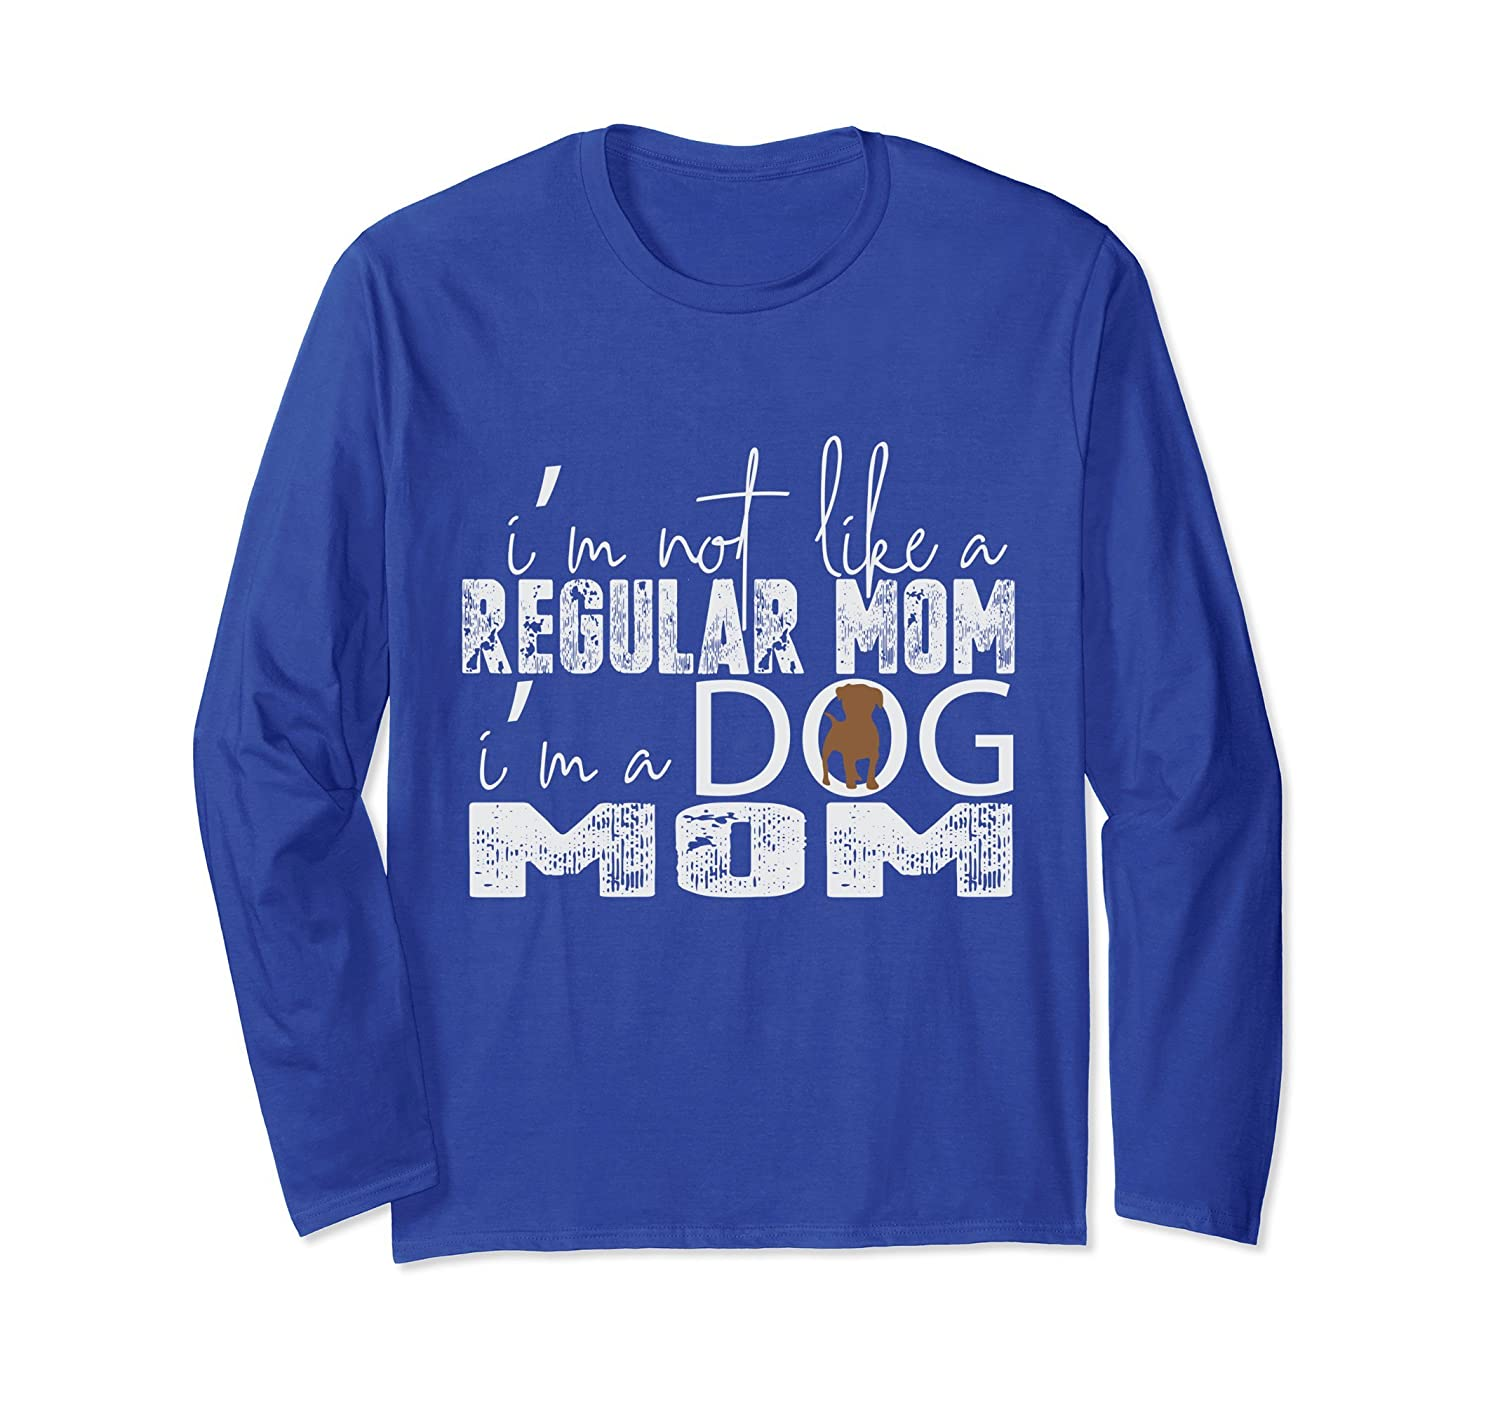 I'm A Dog Mom Cute and Clever Mother's Day Long Sleeve Shirt-AZP